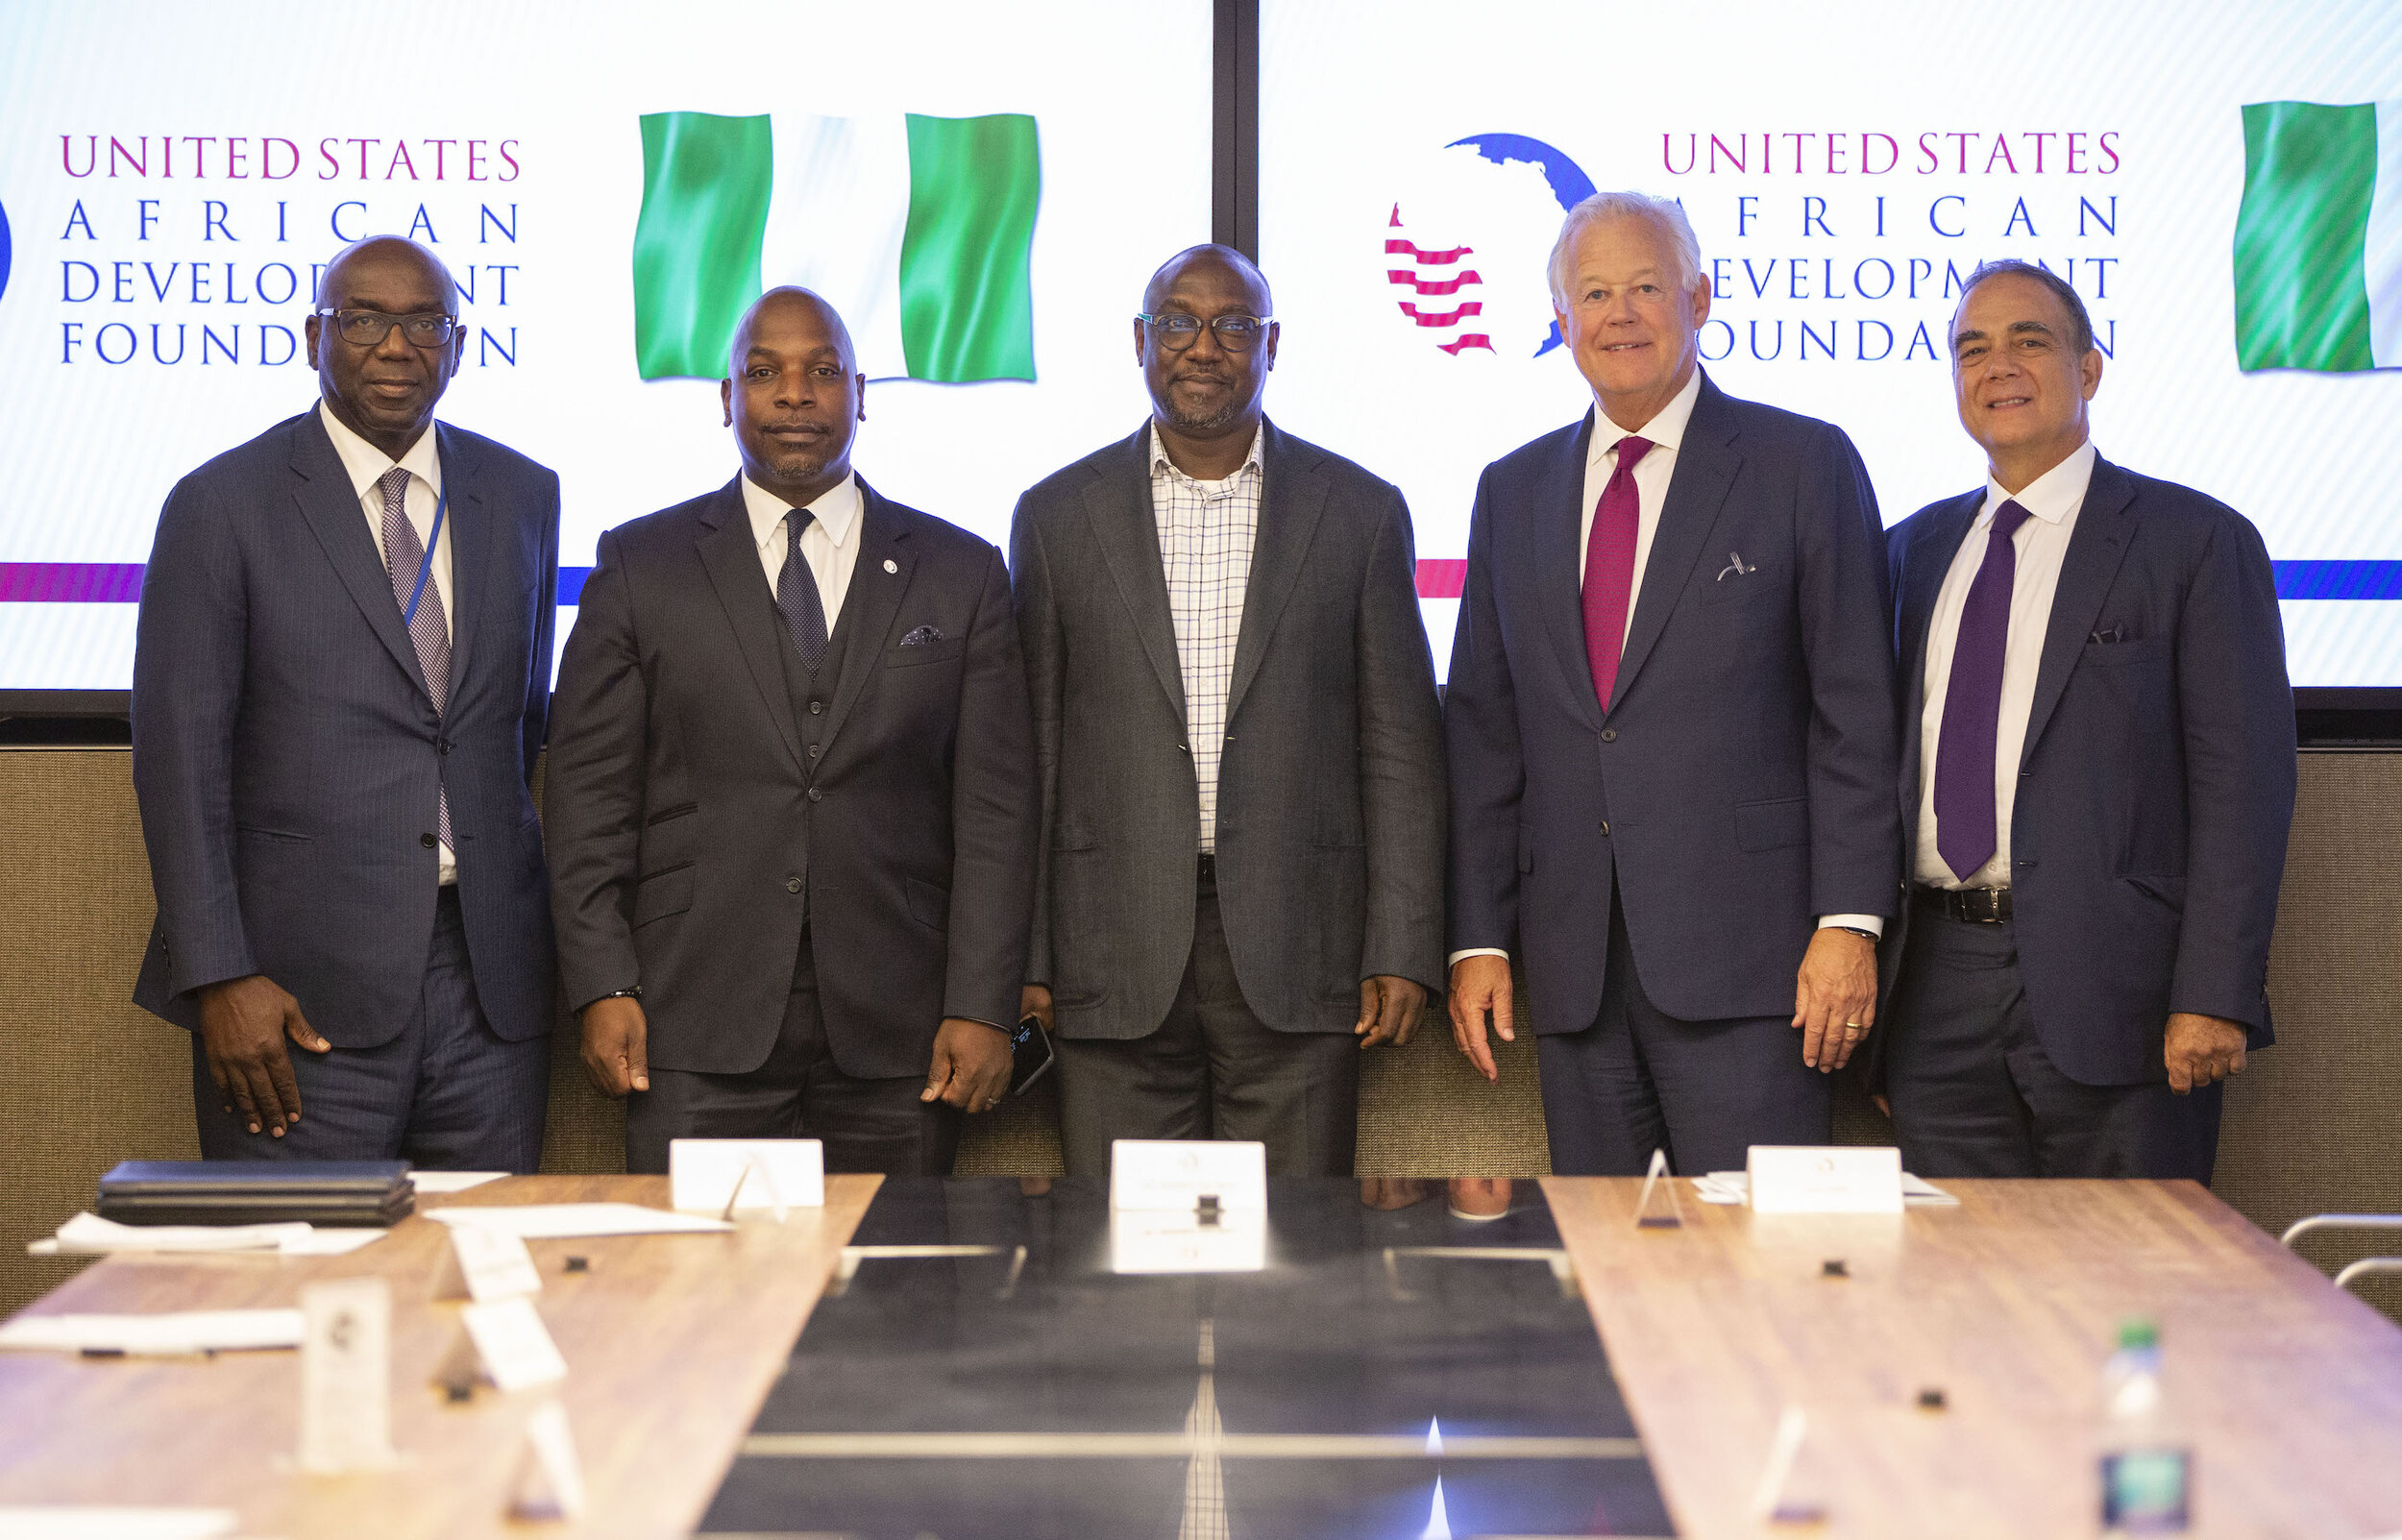 Pictured left to right: Kwara State Governor Abdulrahman Abdulrazaq, USADF President and CEO C.D. Glin, Niger State Governor Abubakar Sani Bello, USADF Board Chair Jack Leslie, and Flour Mills of Nigeria Chairman John Coumantaros.